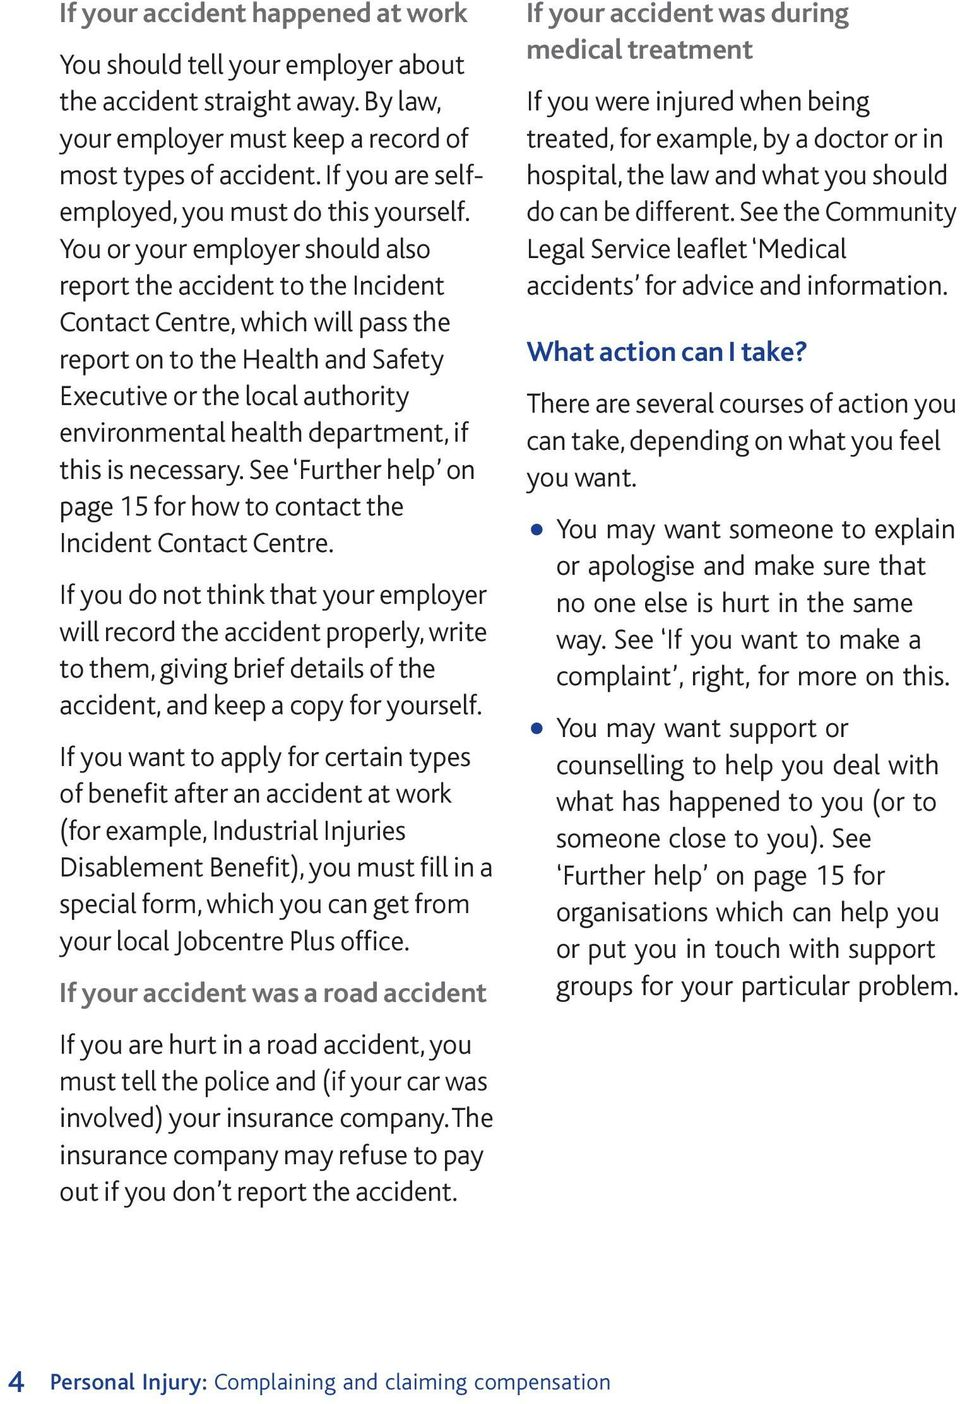 You or your employer should also report the accident to the Incident Contact Centre, which will pass the report on to the Health and Safety Executive or the local authority environmental health